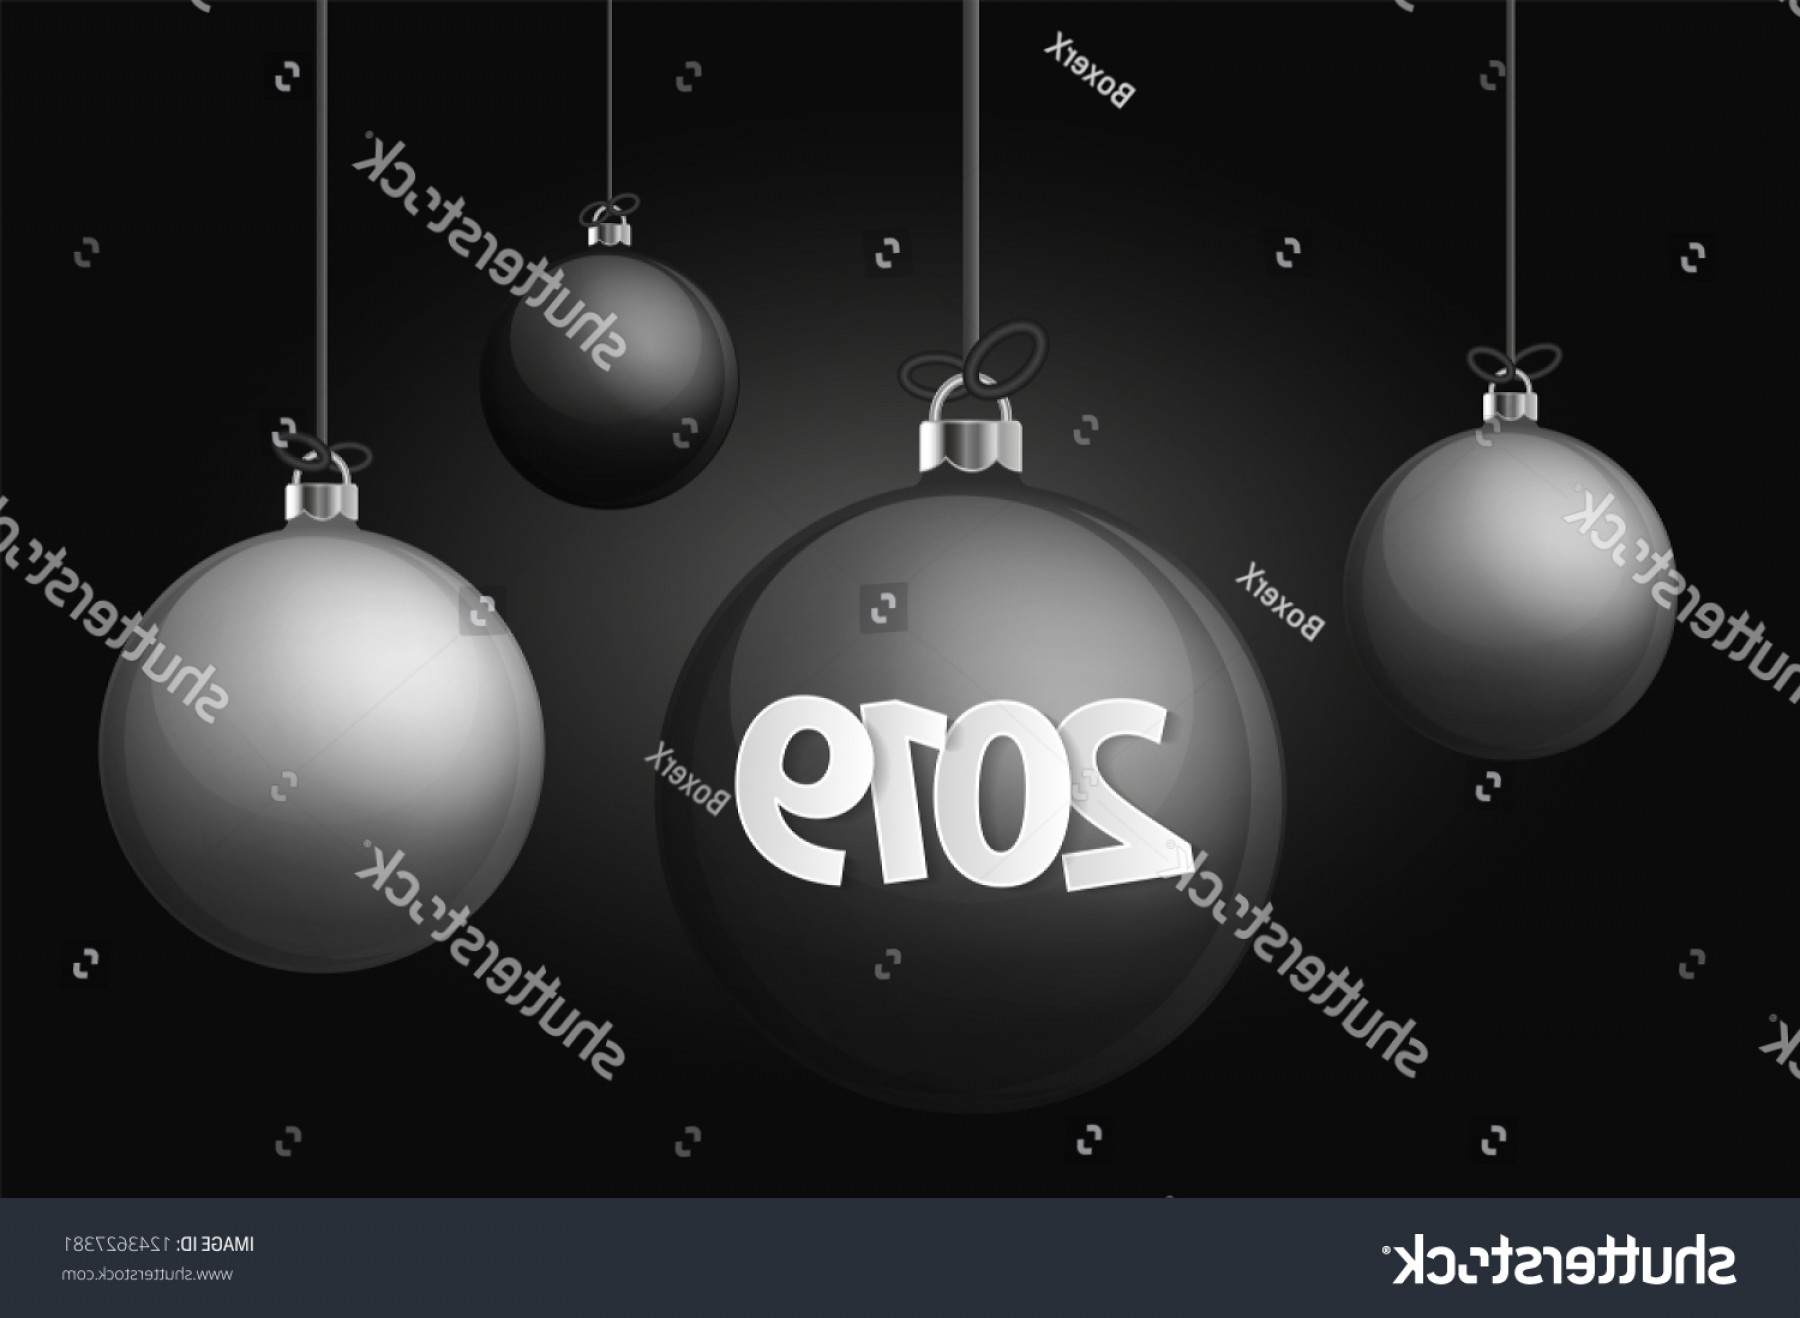 Vector-Based Grayscale Christmas: Xmas New Year Concept Realistic